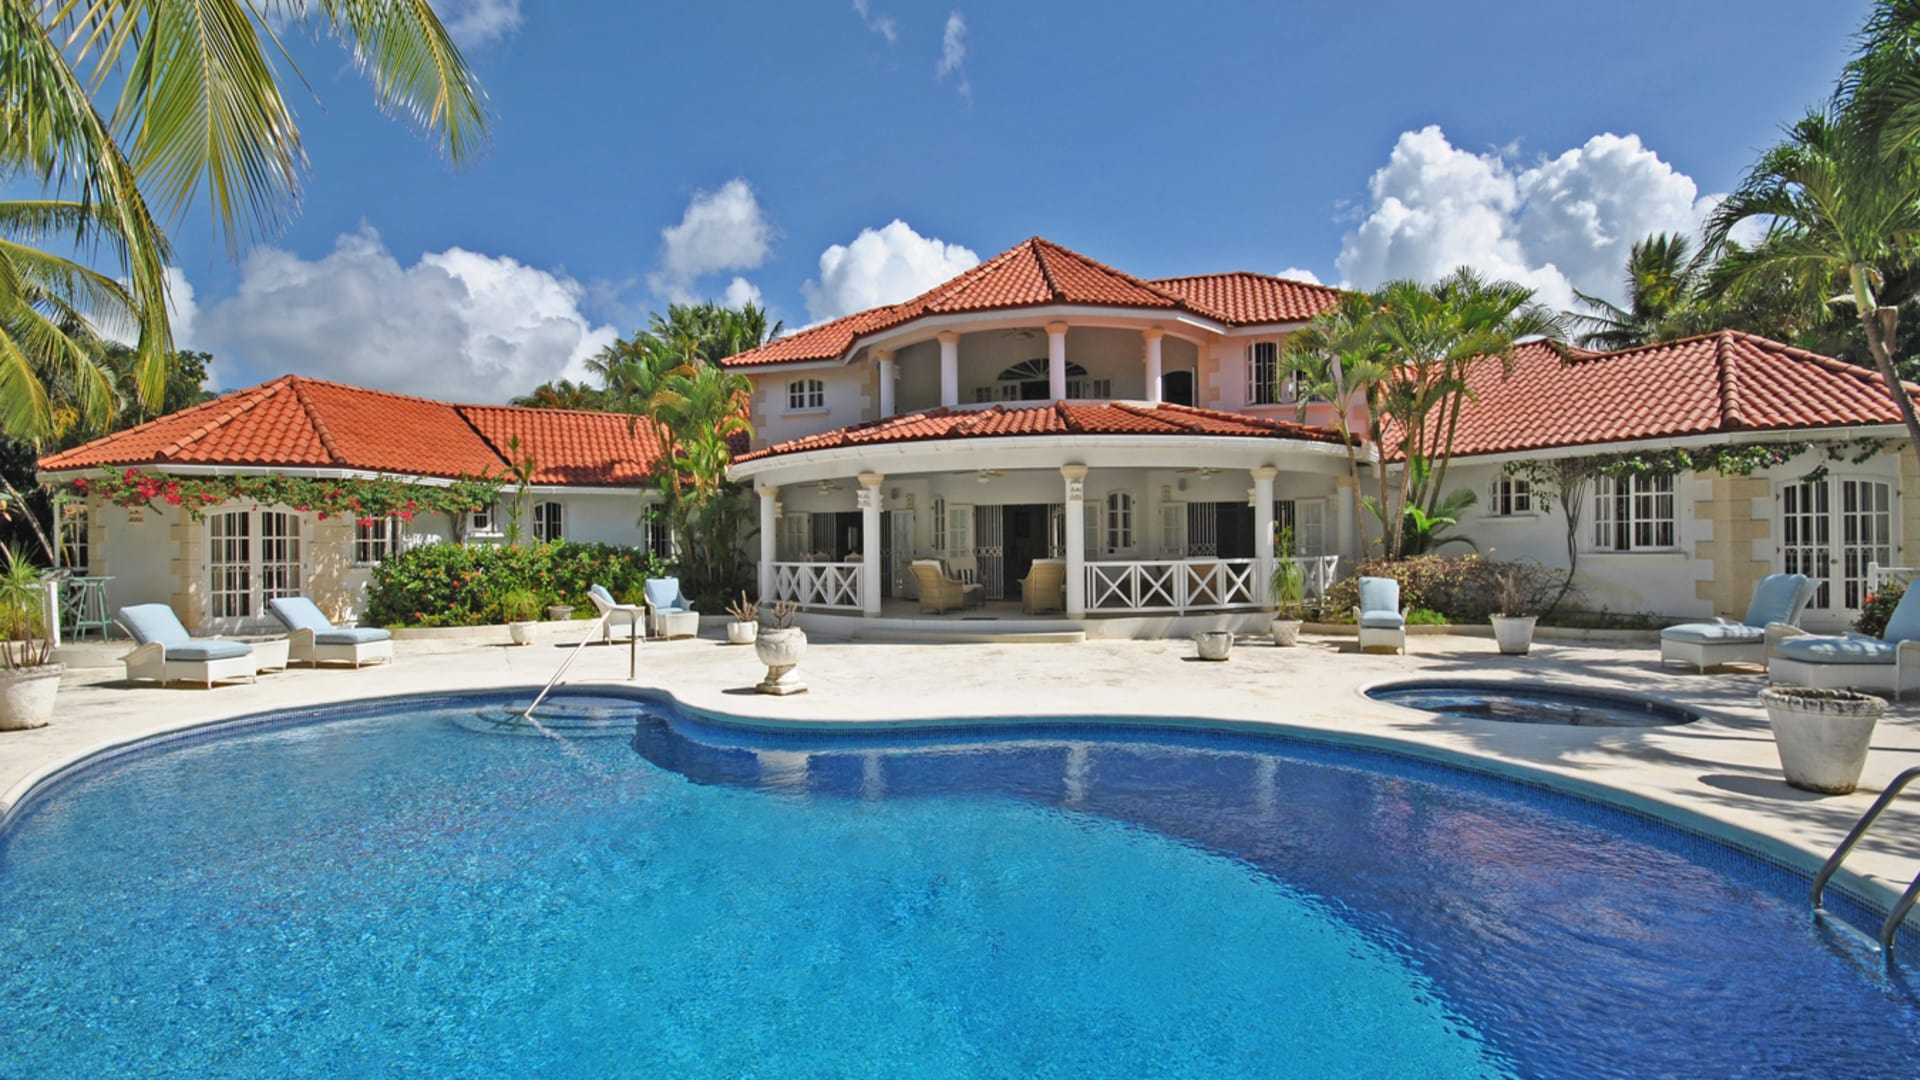 kinney_smith_barbados_luxury_property